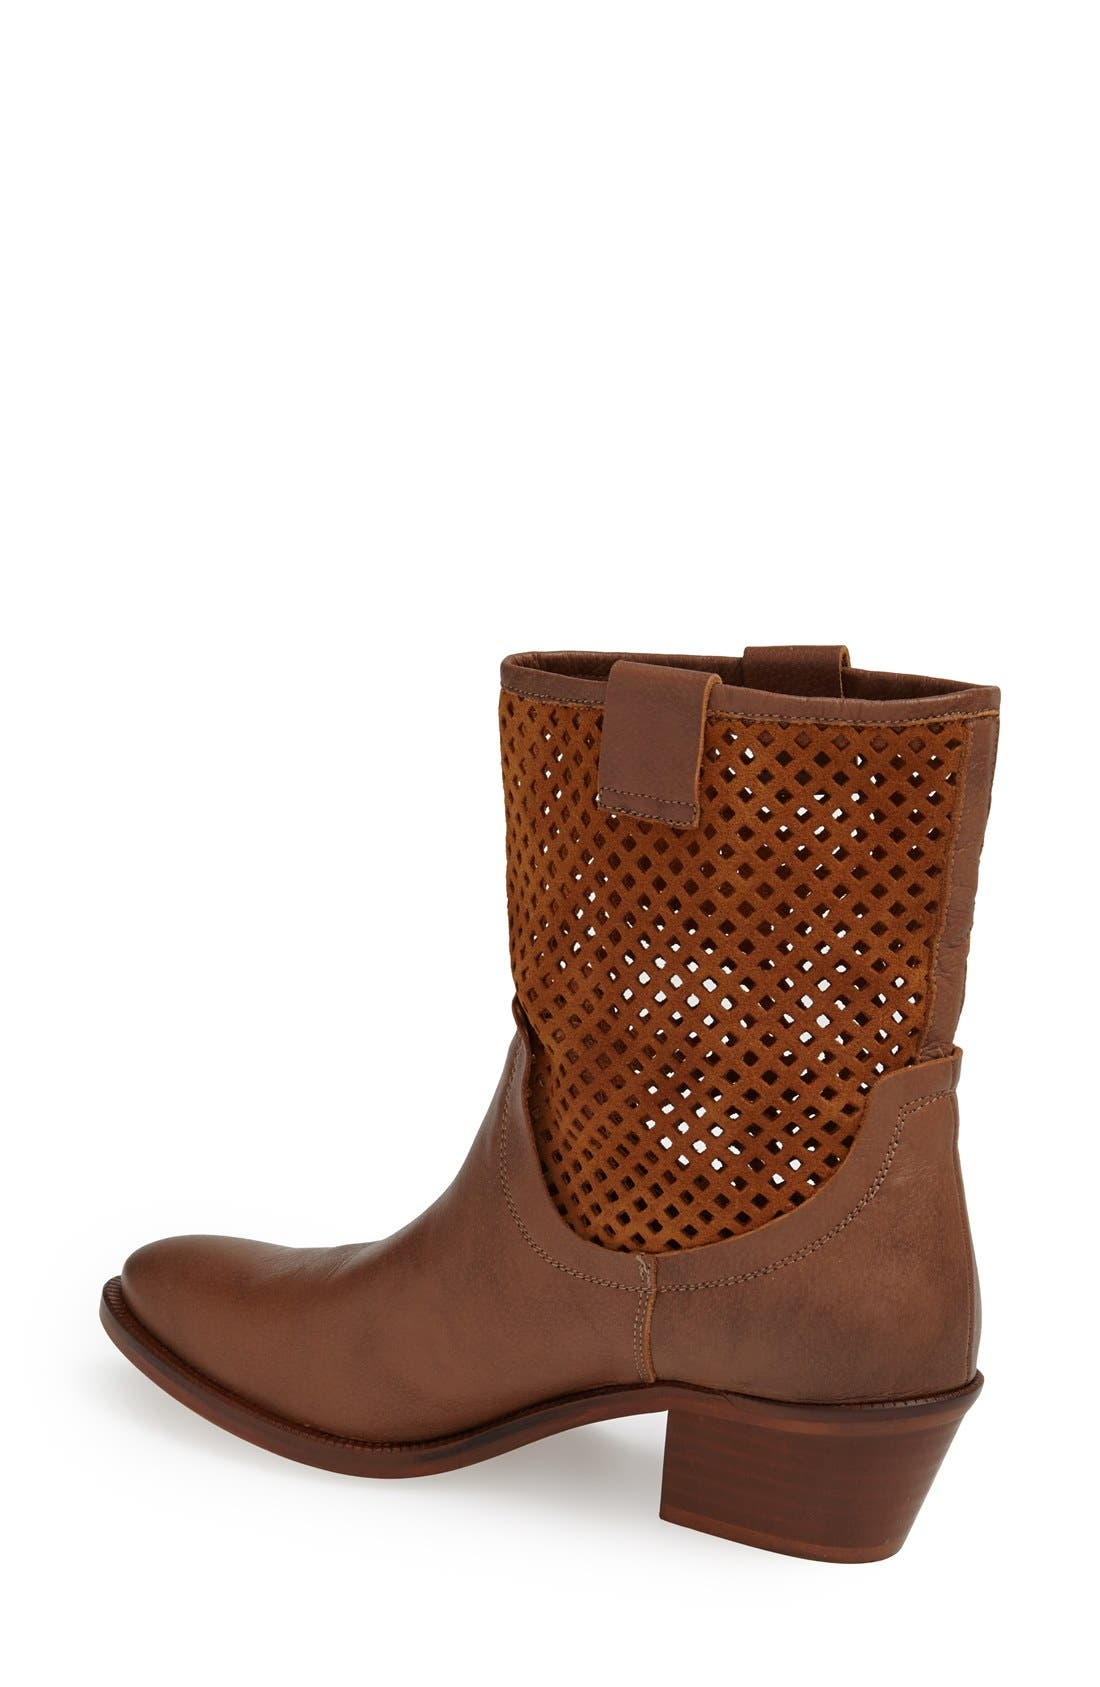 Alternate Image 2  - SIXTYSEVEN 'Laurie' Perforated Leather Short Boot (Women)